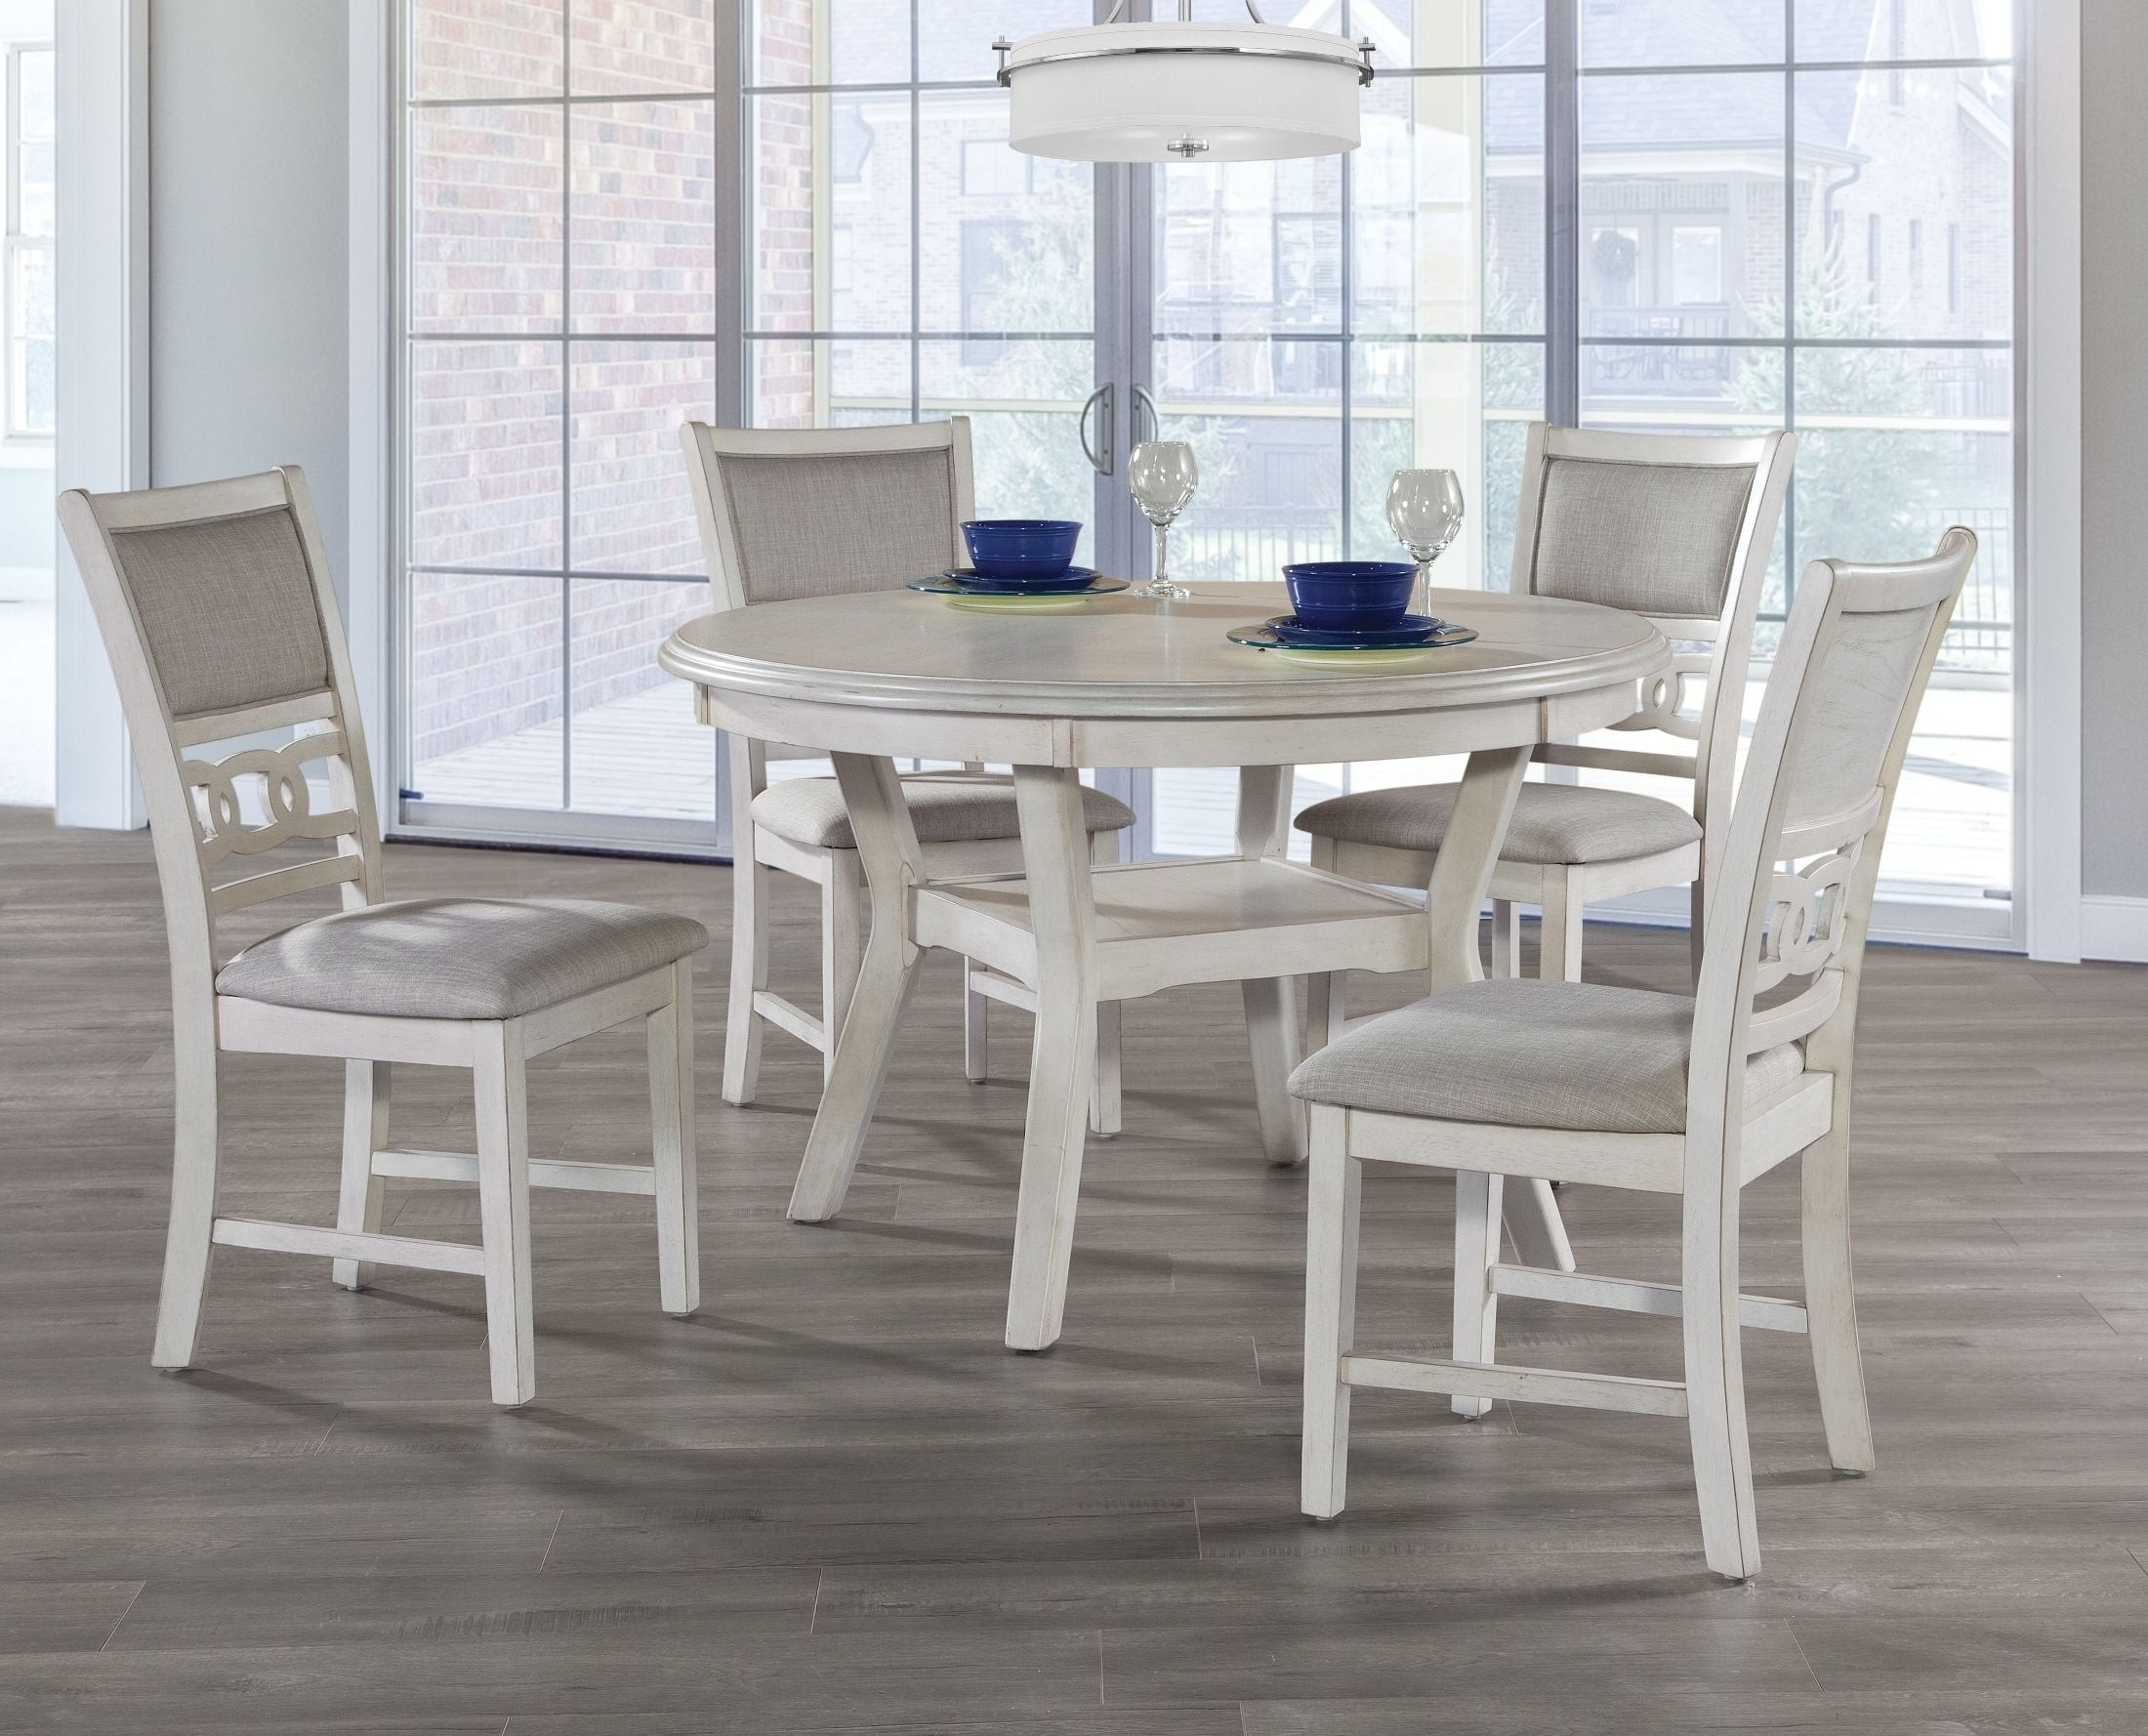 Most Recently Released Caden 5 Piece Round Dining Sets Intended For Best Round Dining Room Table With Best Furniture Mentor Oh Furniture (View 17 of 25)